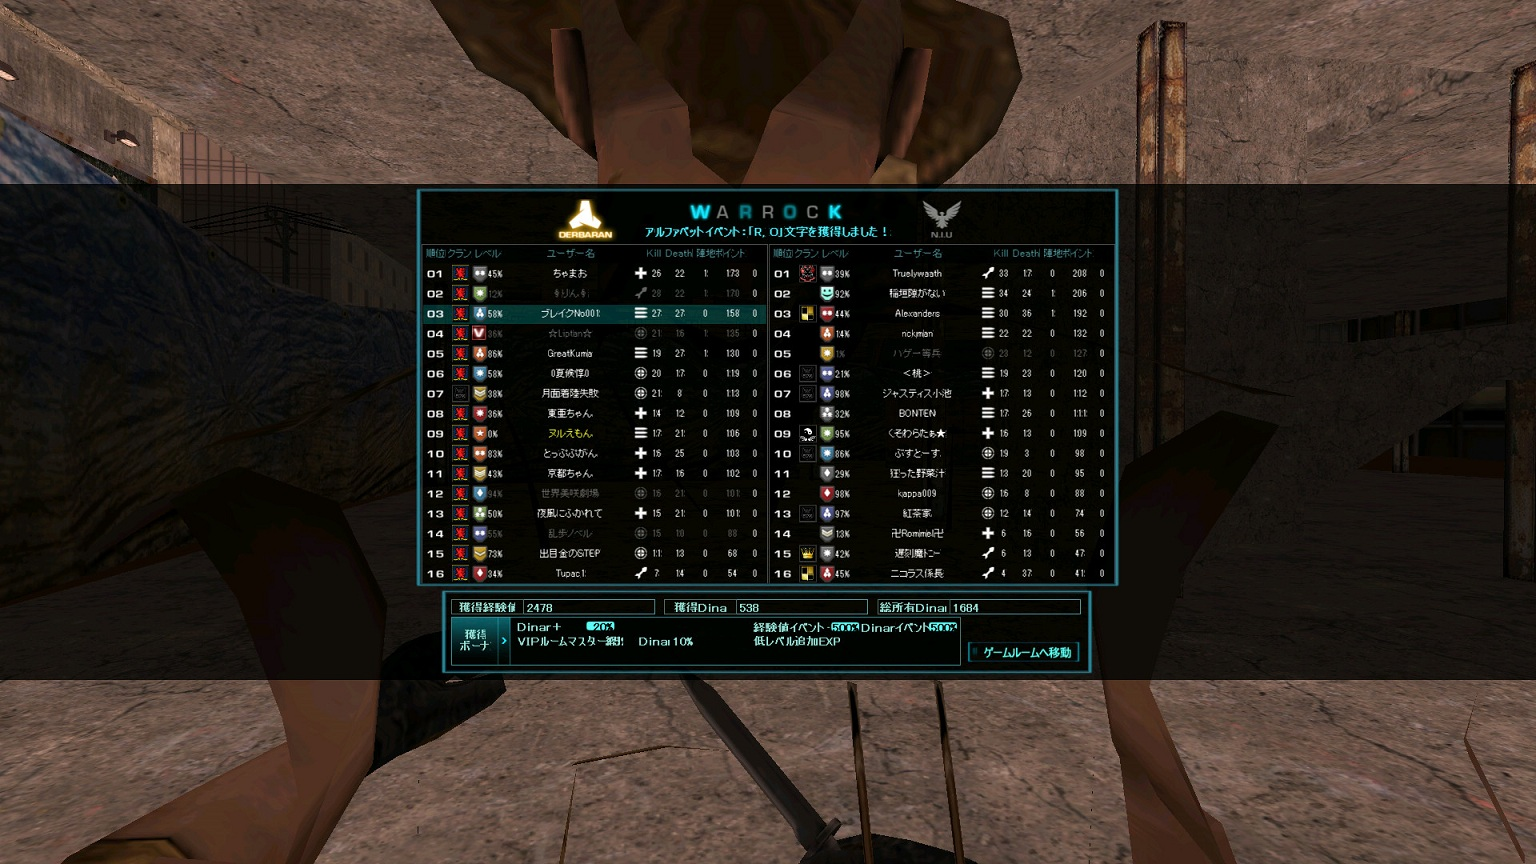 screenshot_247.jpg